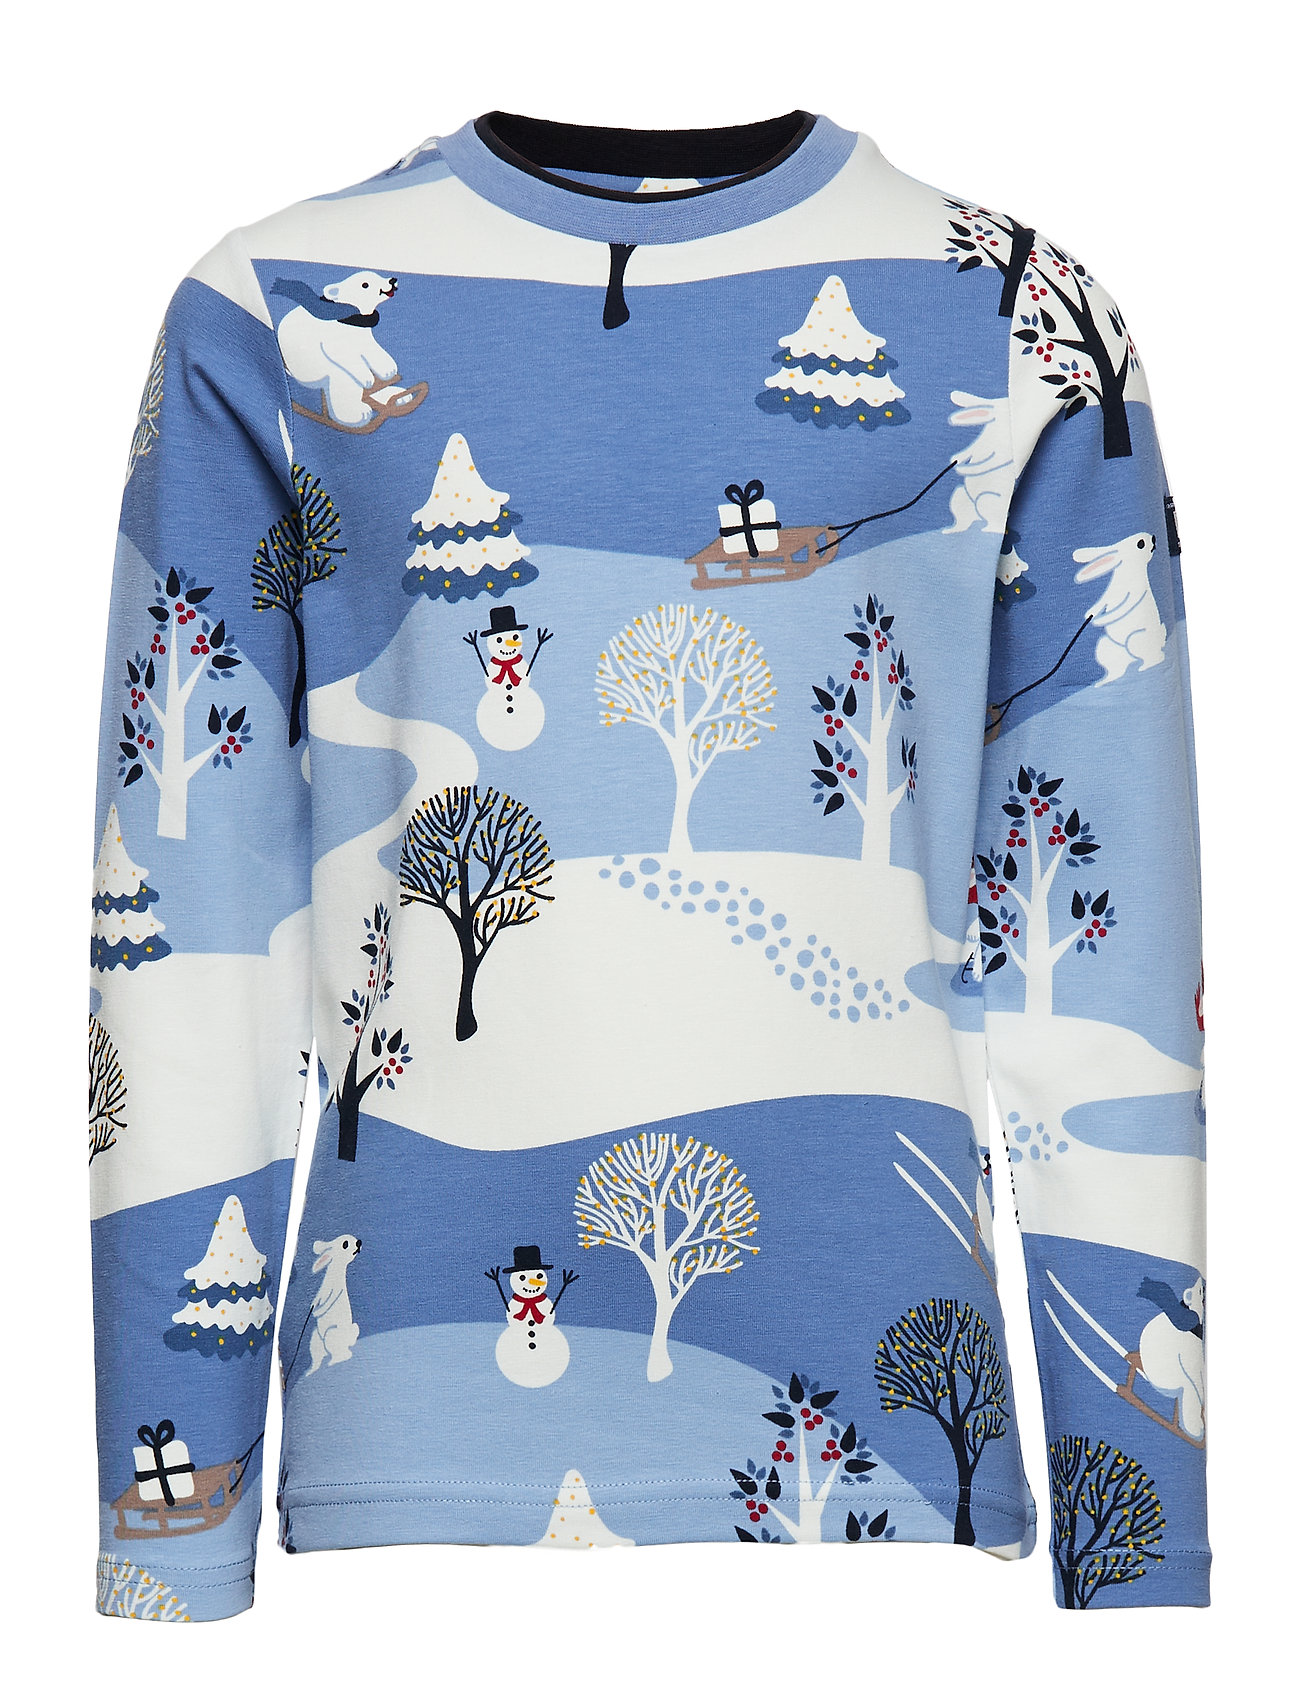 Polarn O. Pyret Top l/s AOP Pre-school - DUSK BLUE